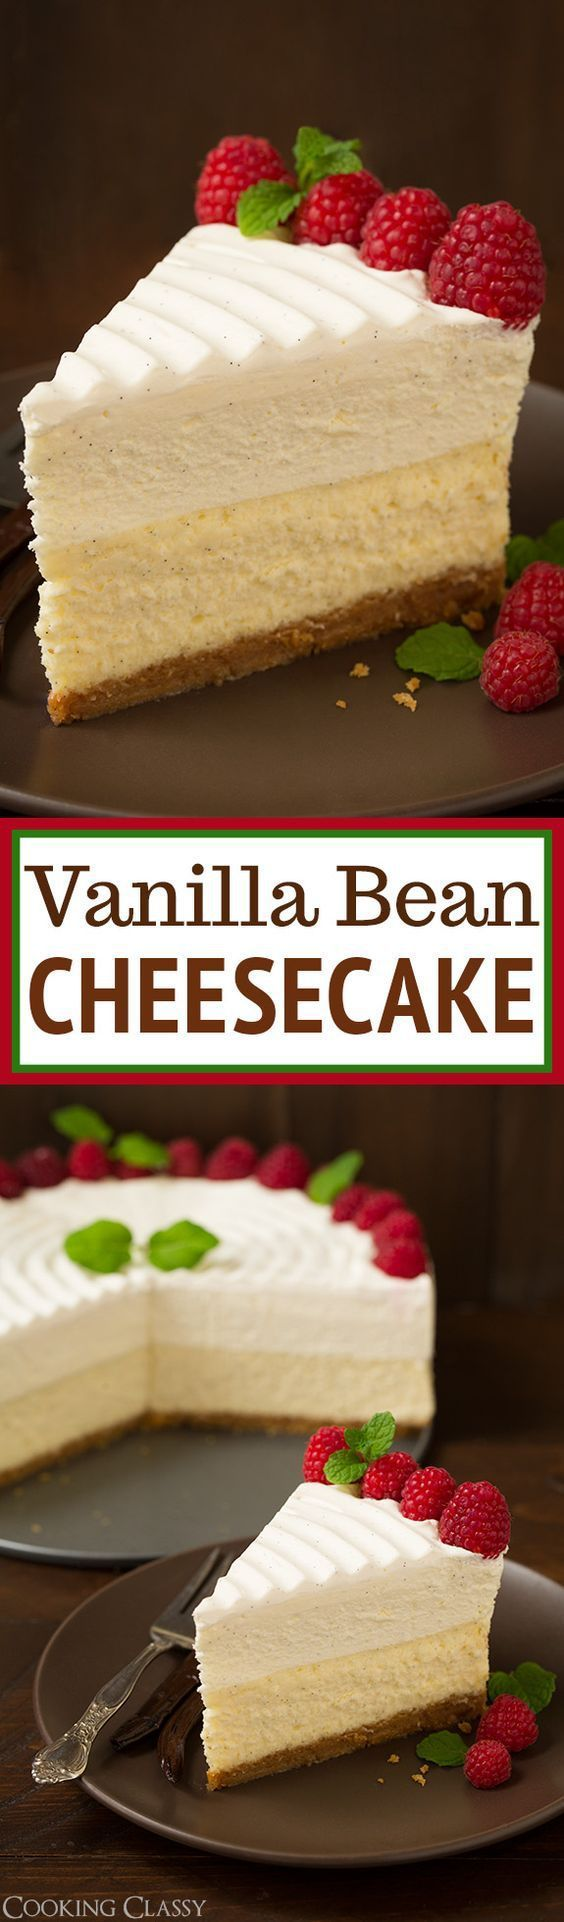 17 Best ideas about White Chocolate Cheesecake on ...